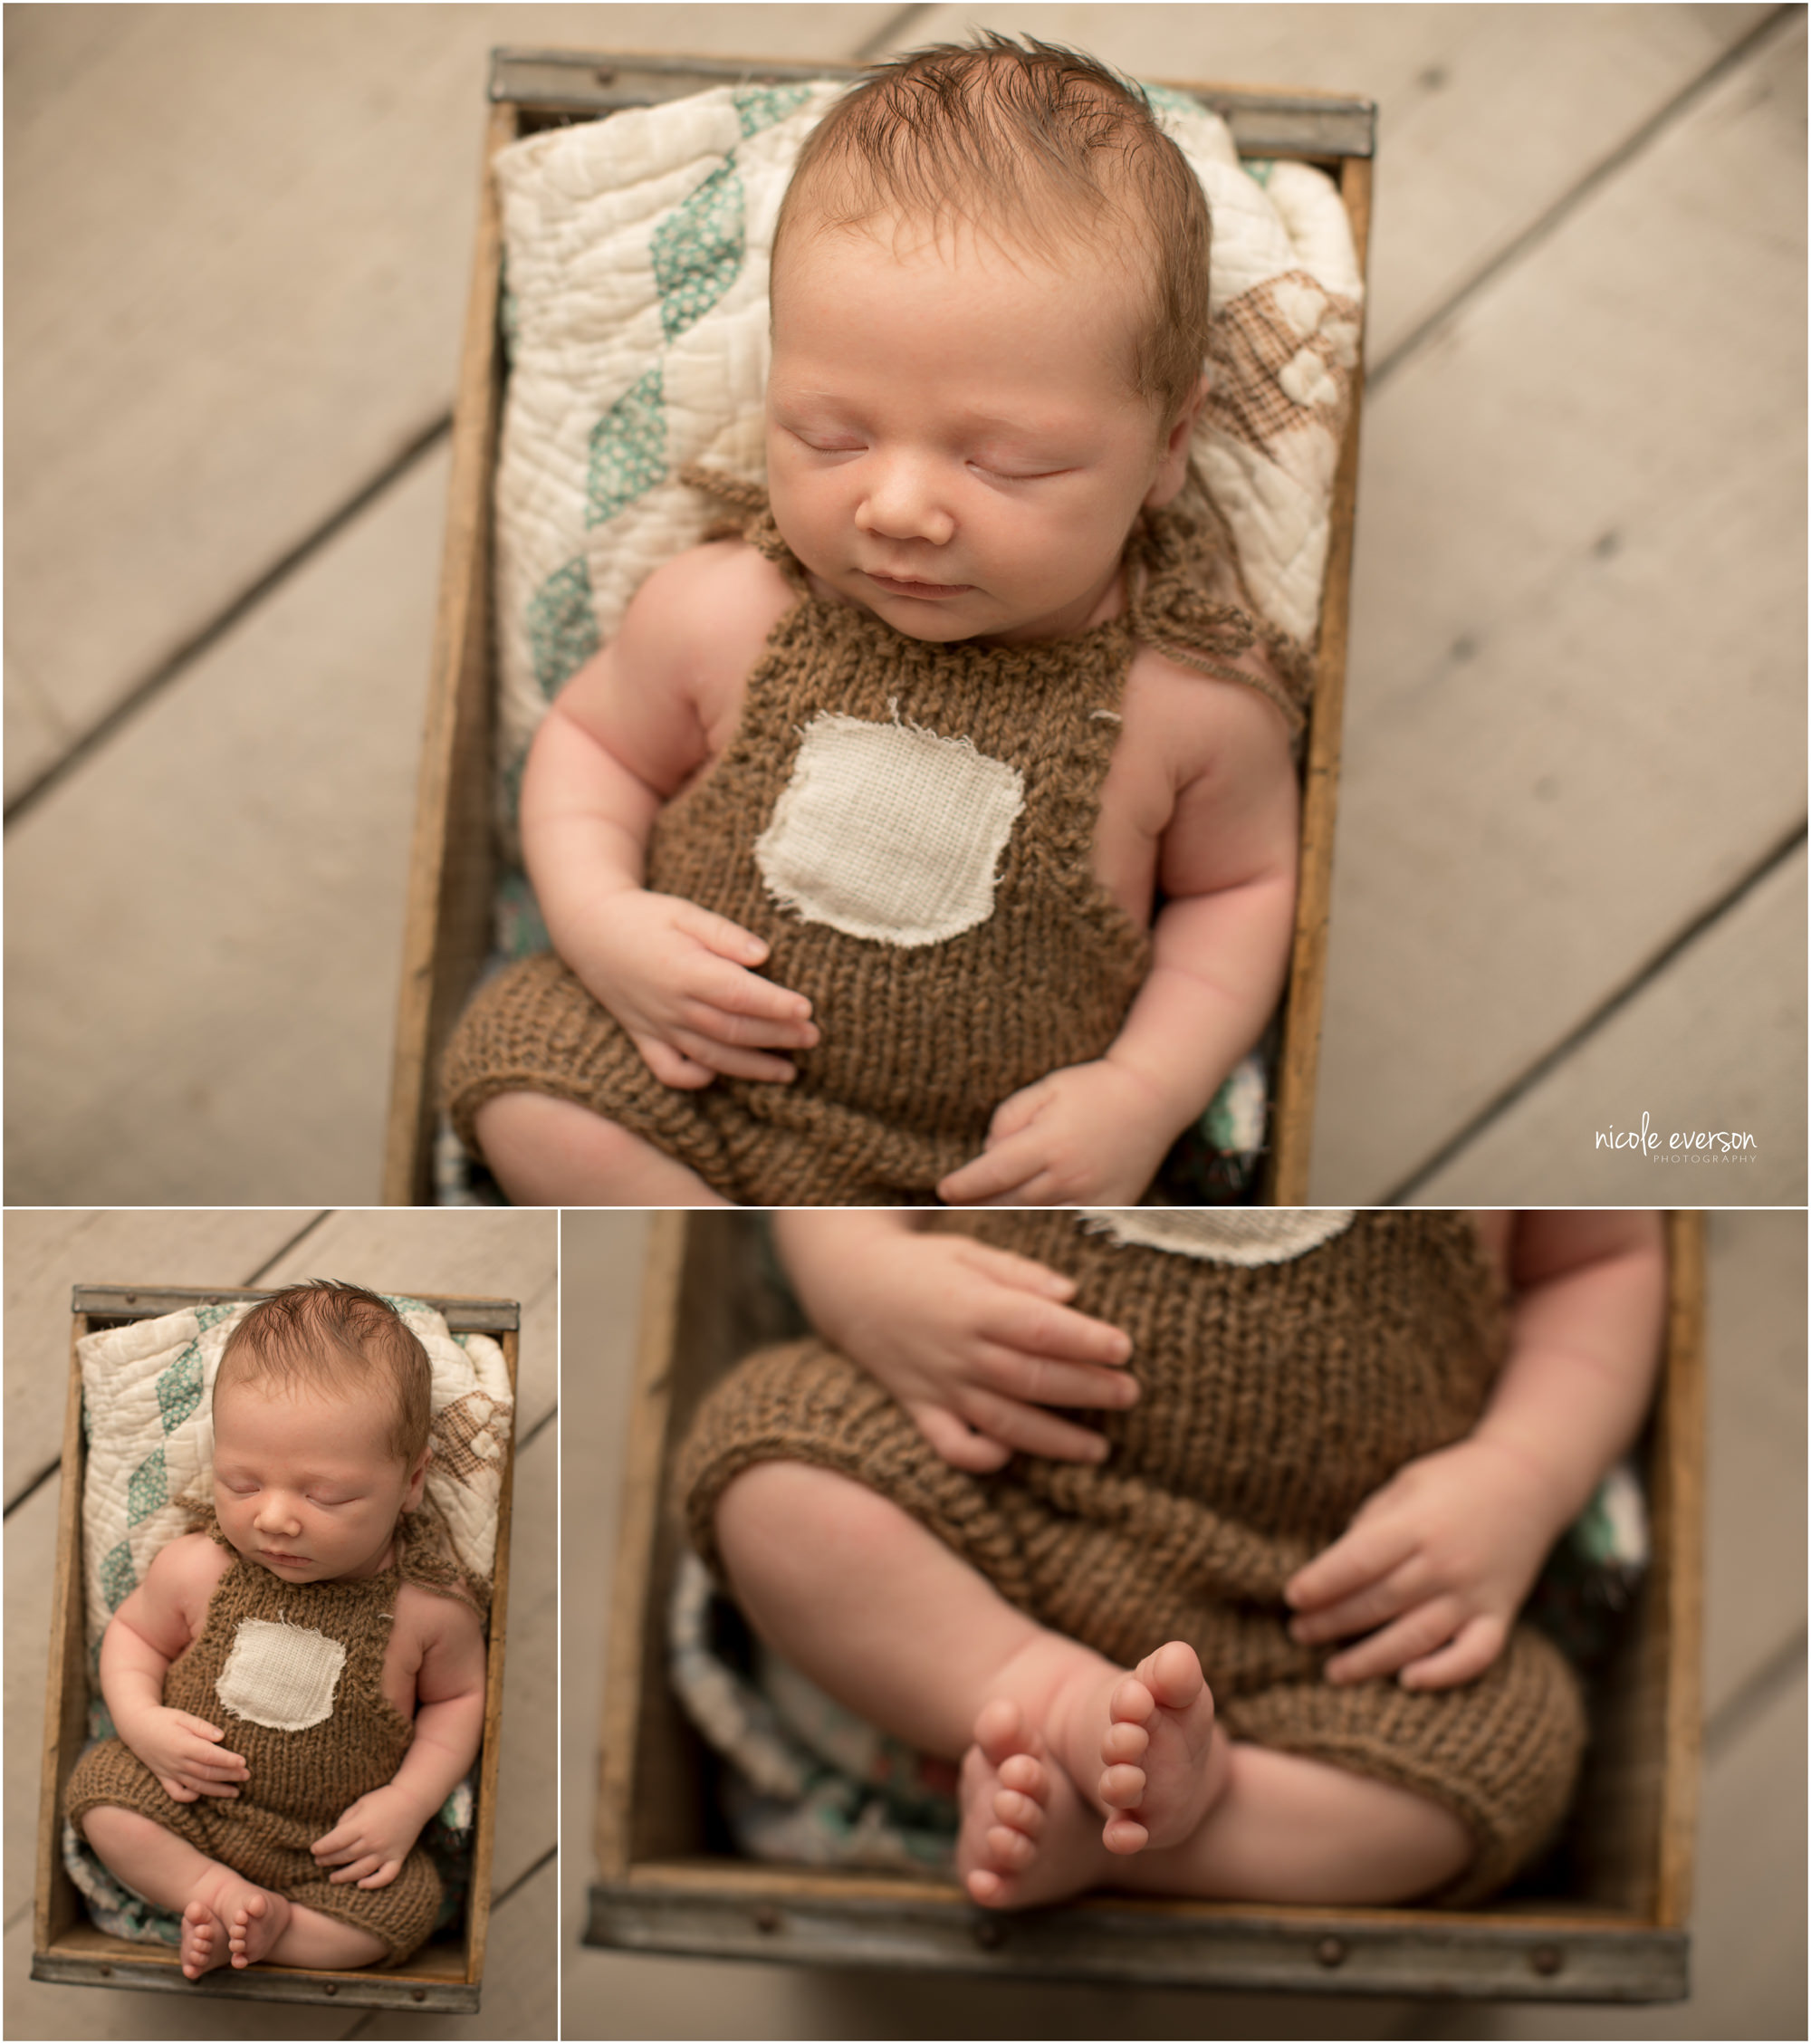 newborn photographed Nicole Everson Photography in a vintage box wearing overalls